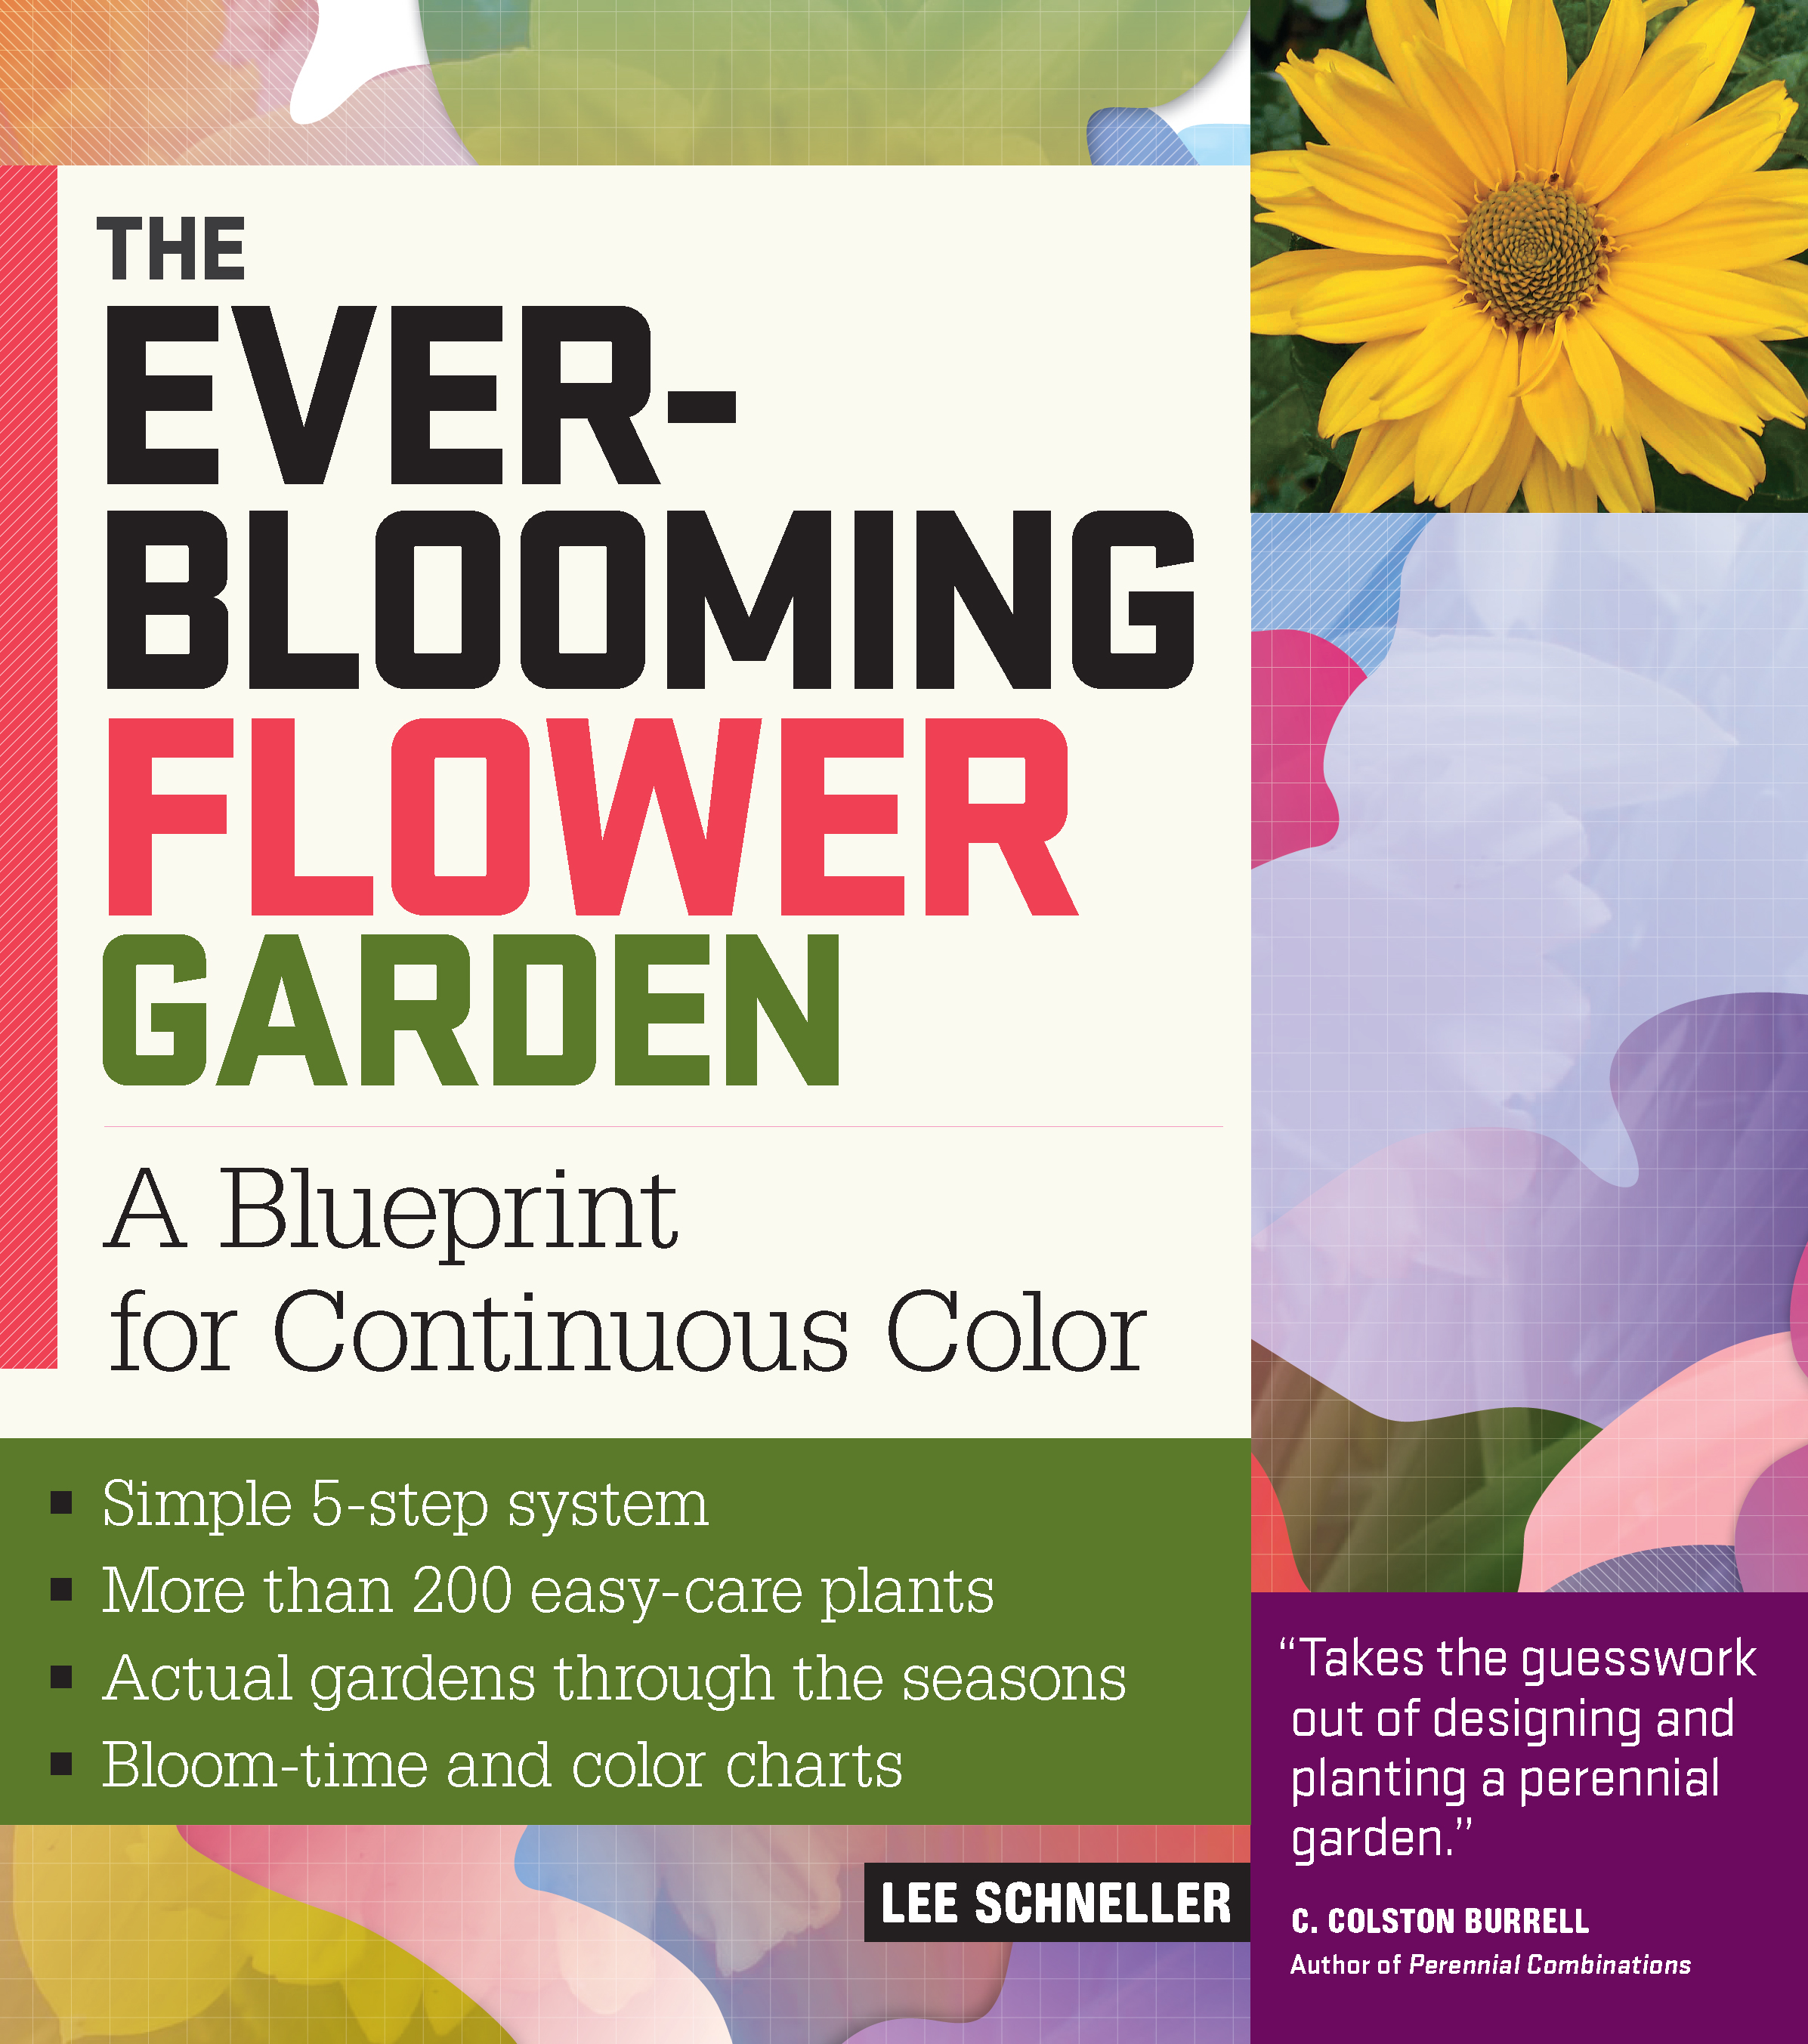 The Ever-Blooming Flower Garden A Blueprint for Continuous Color - Lee Schneller